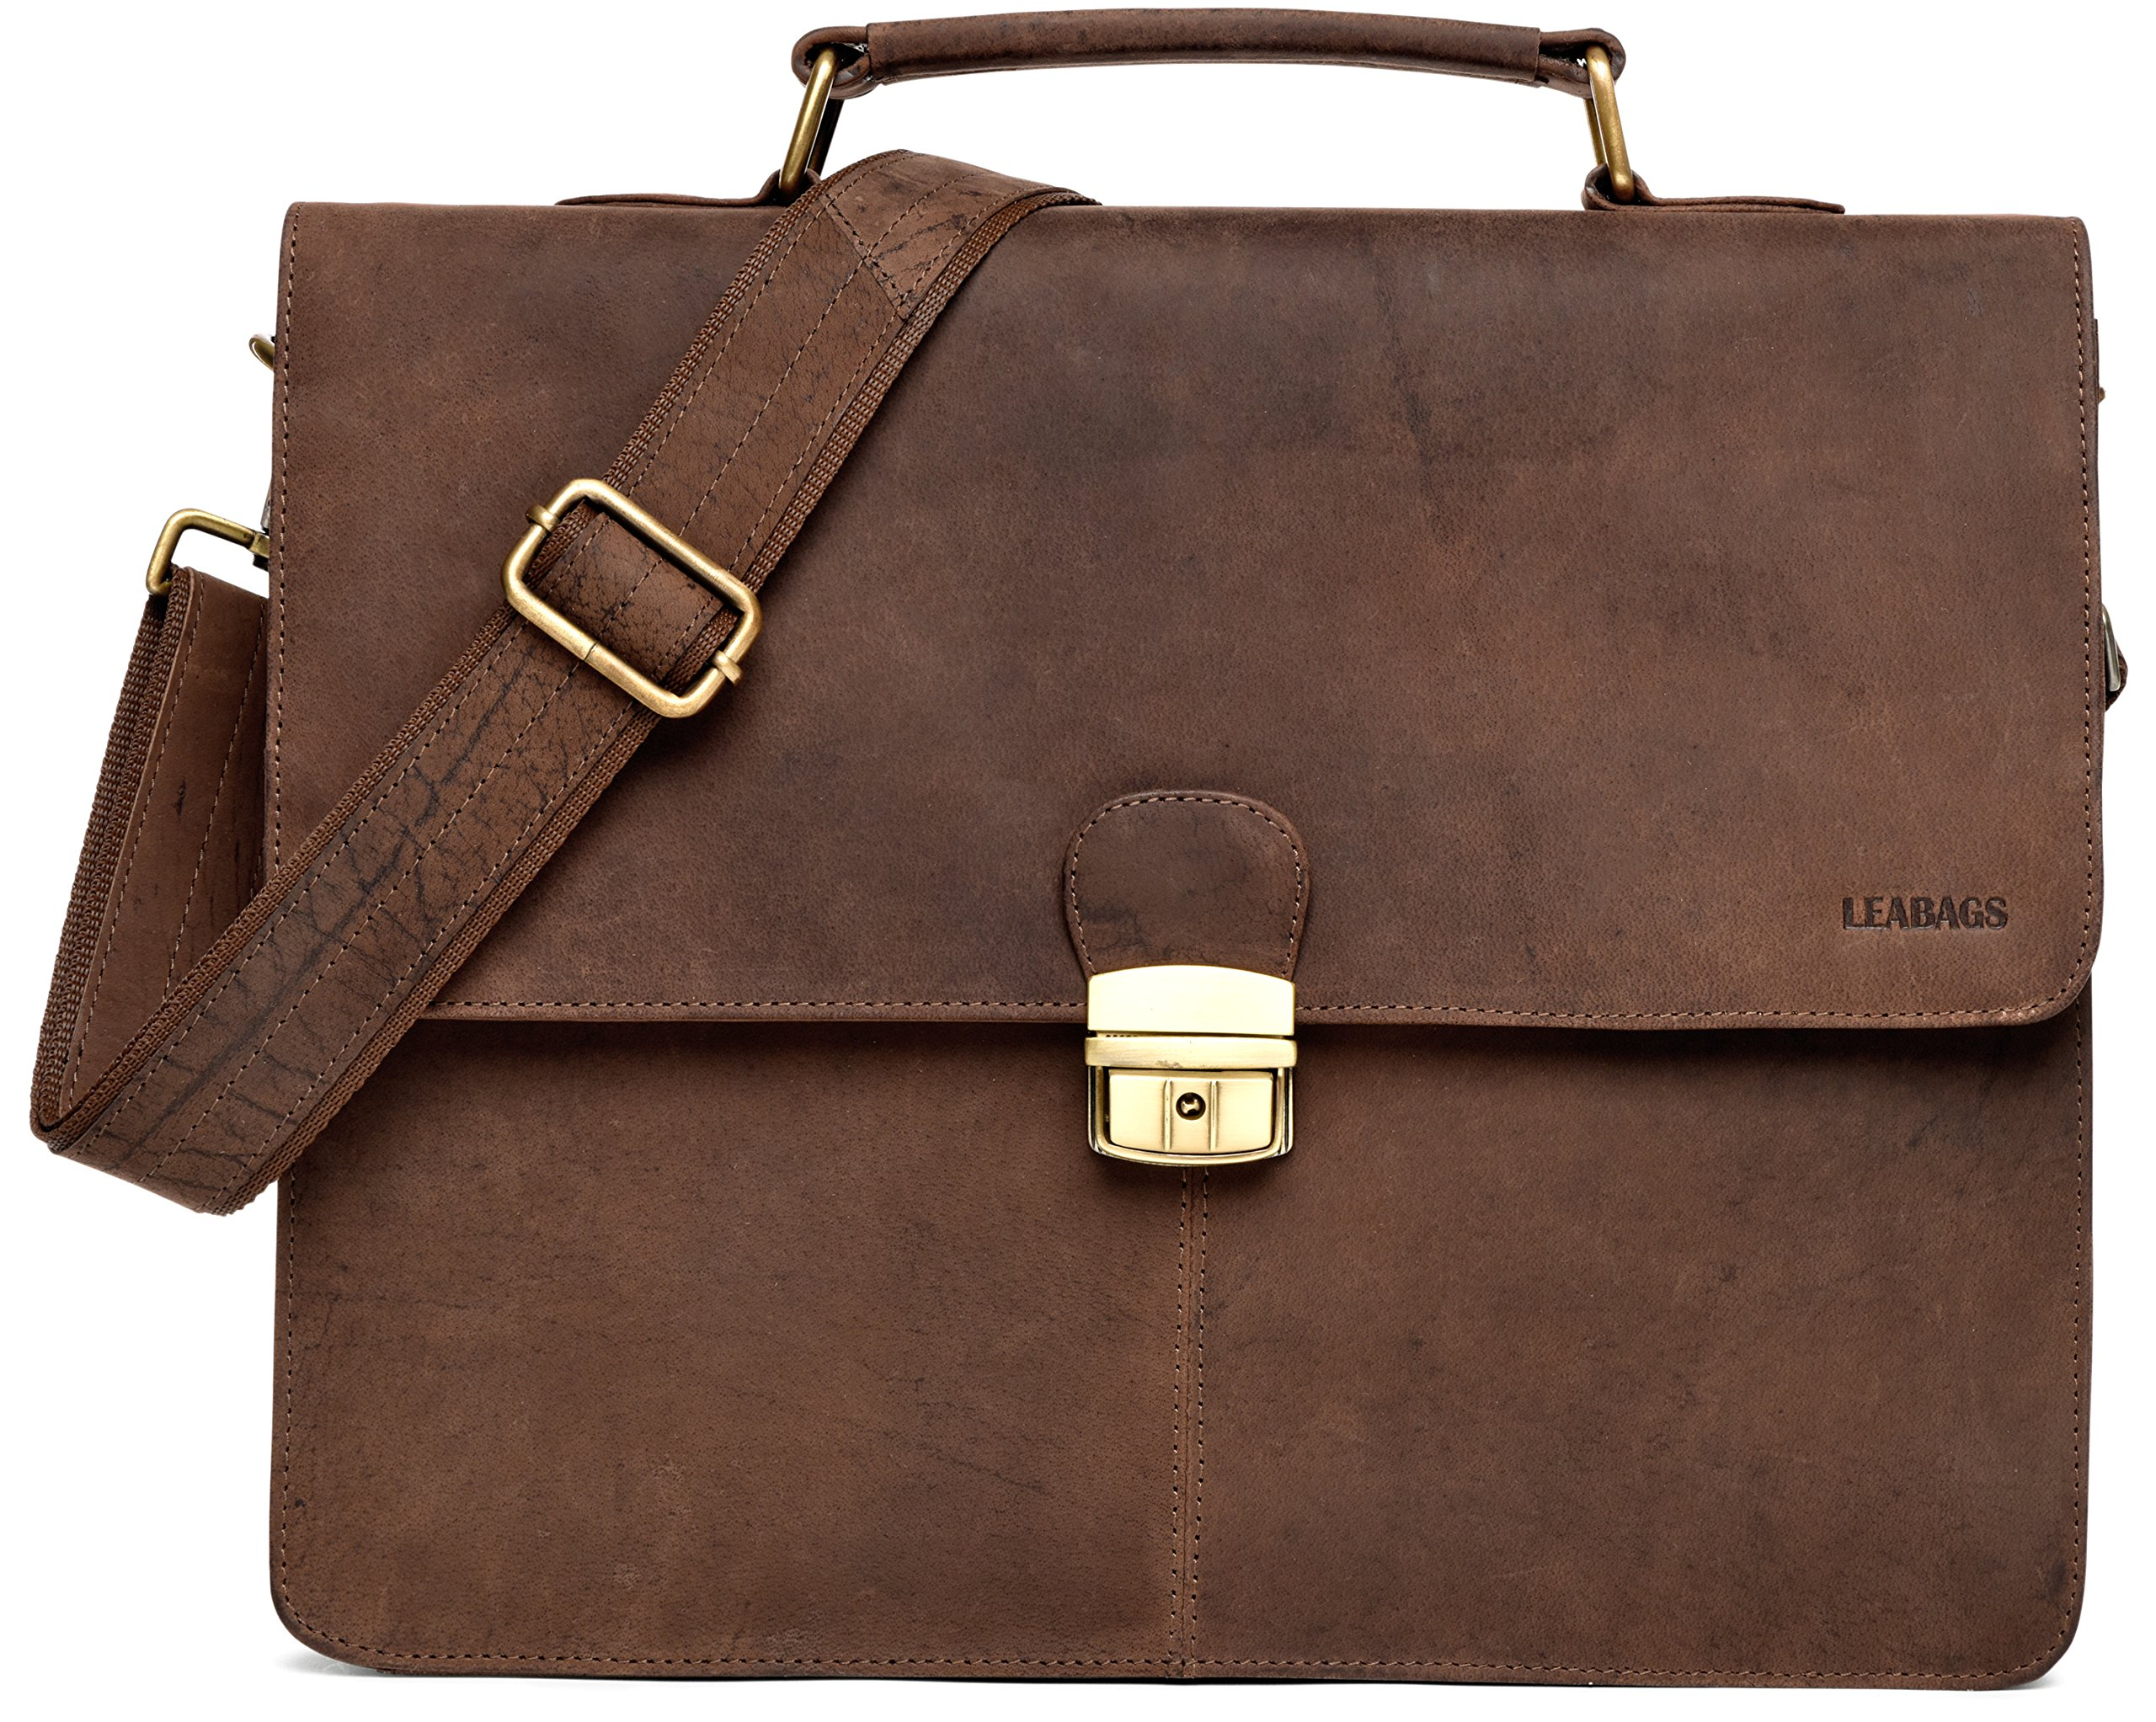 LEABAGS Miramar Briefcase of Genuine Buffalo Leather in Vintage Look - Muskat by LEABAGS (Image #1)